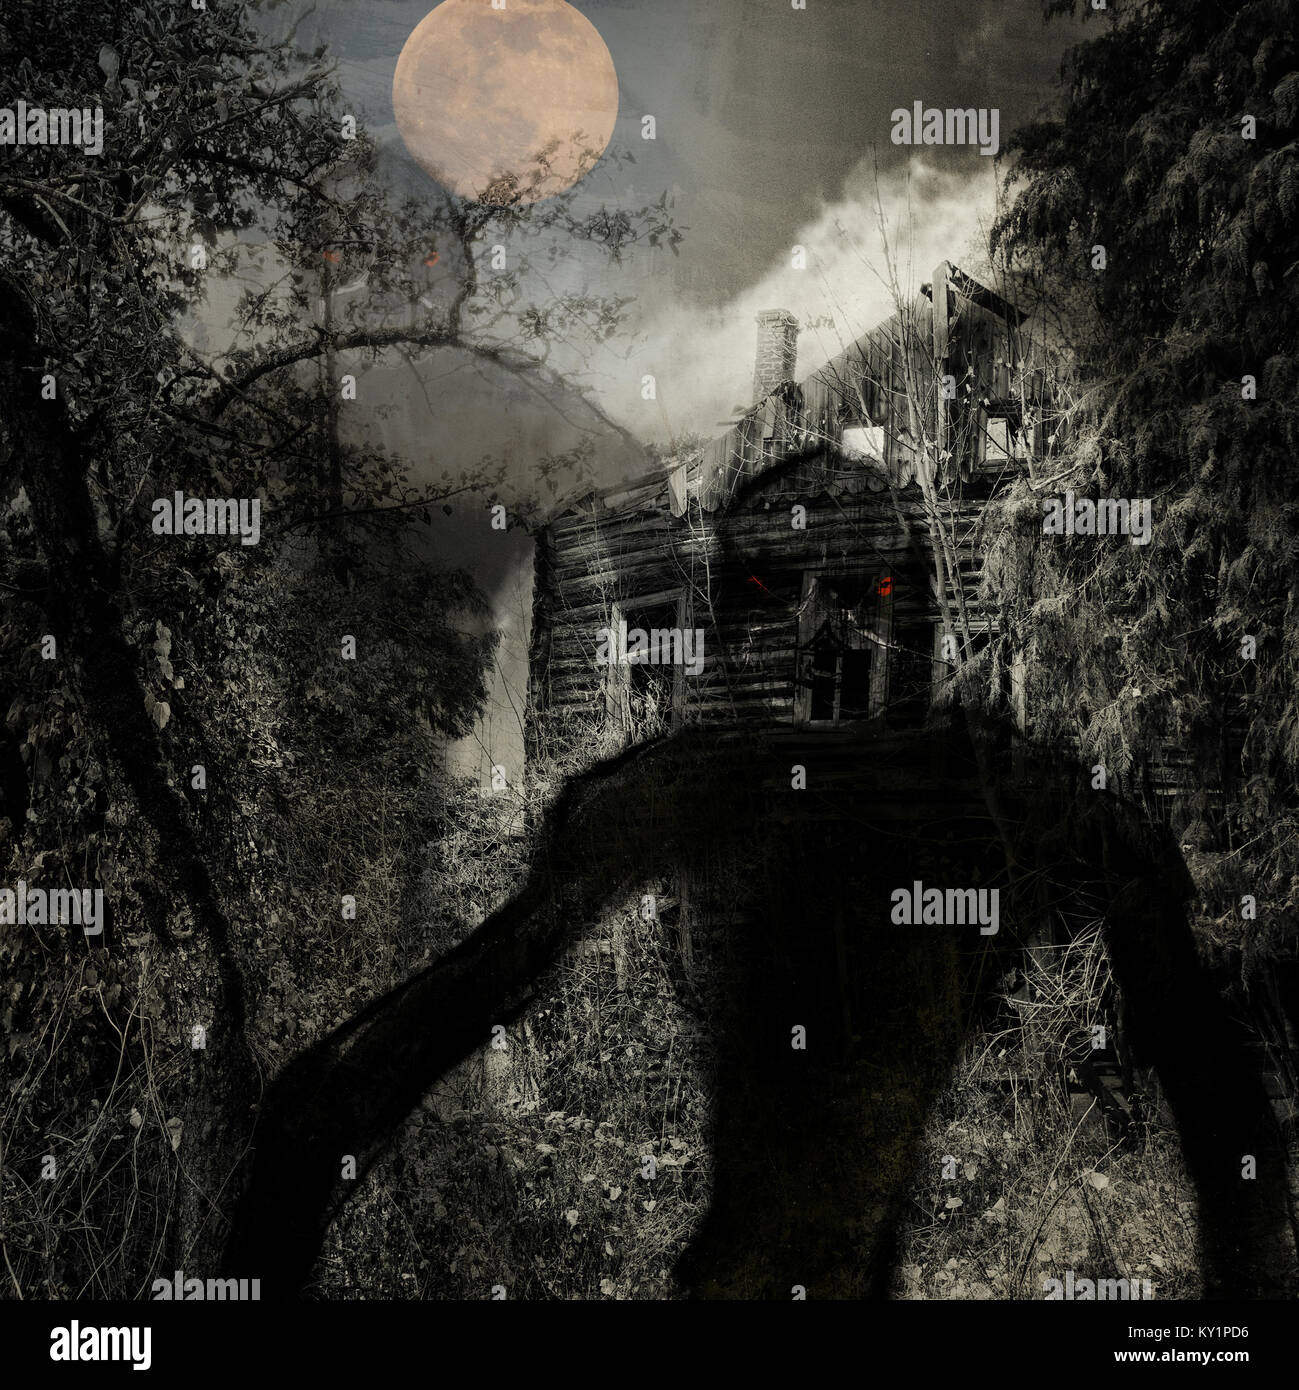 Full moon over the wooden creepy house, evil creatures above, grunge dark halloween background - Stock Image